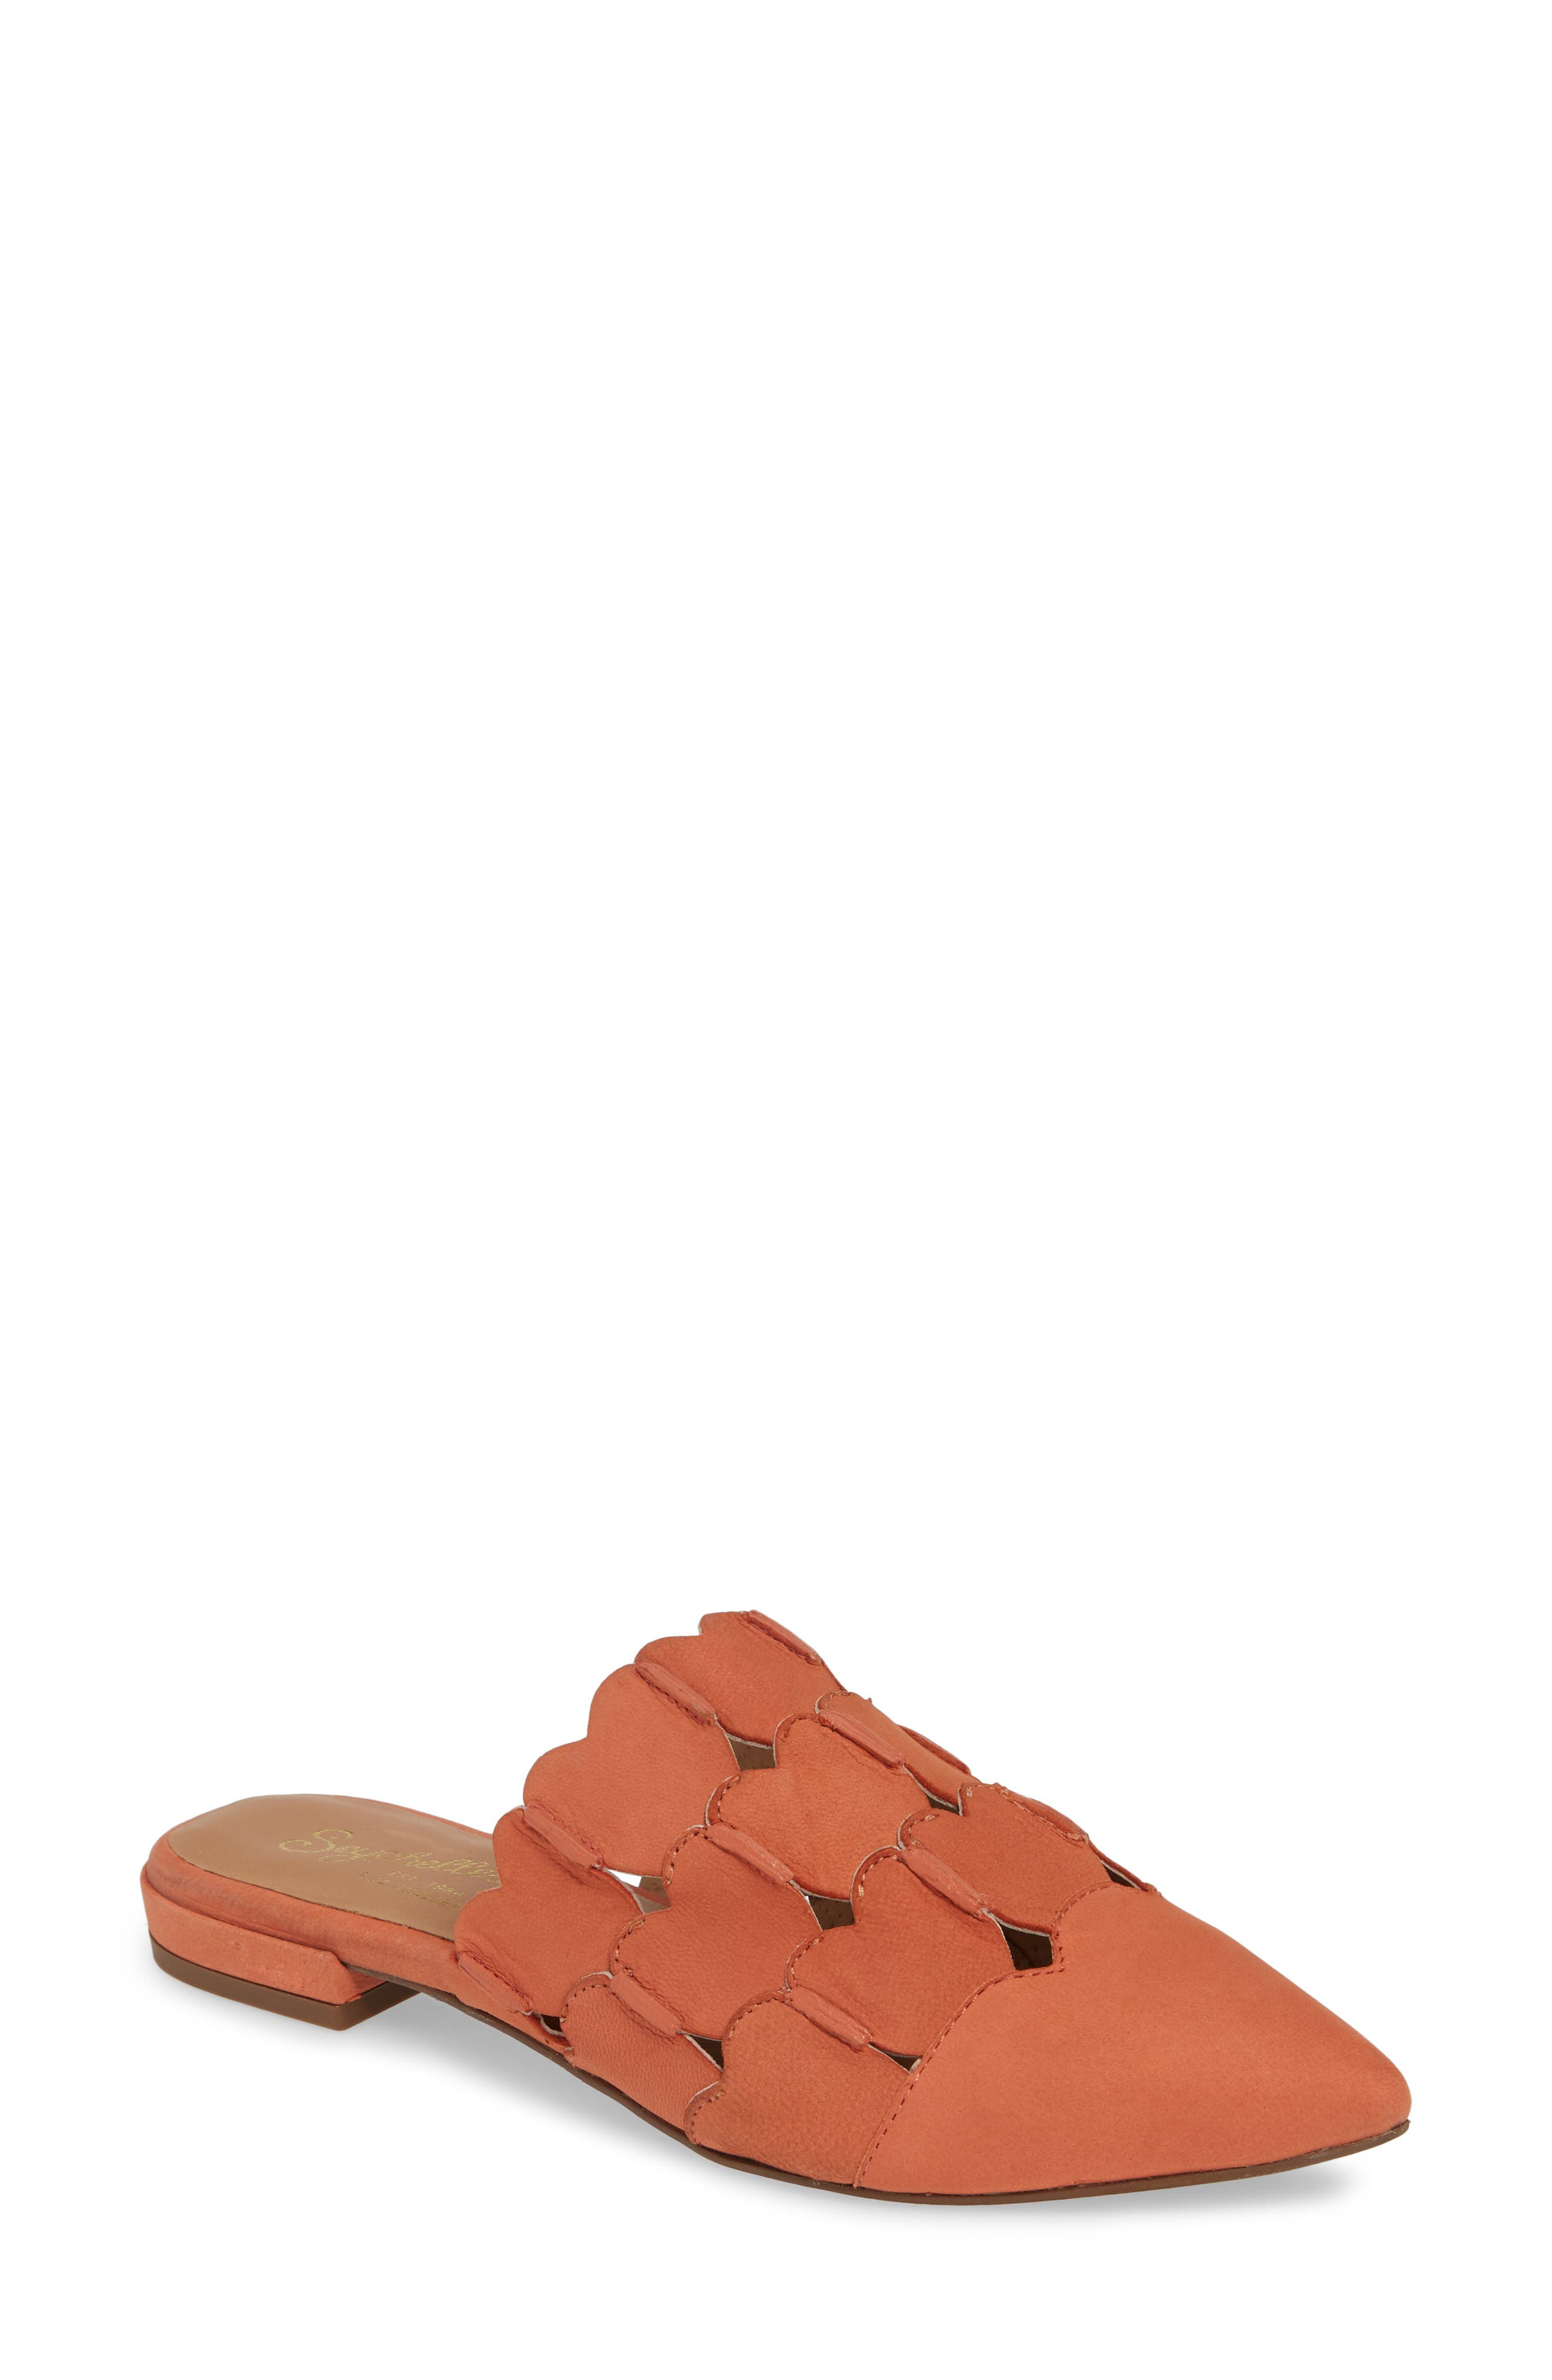 Seychelles Reminders Of You Heart Mule, Coral